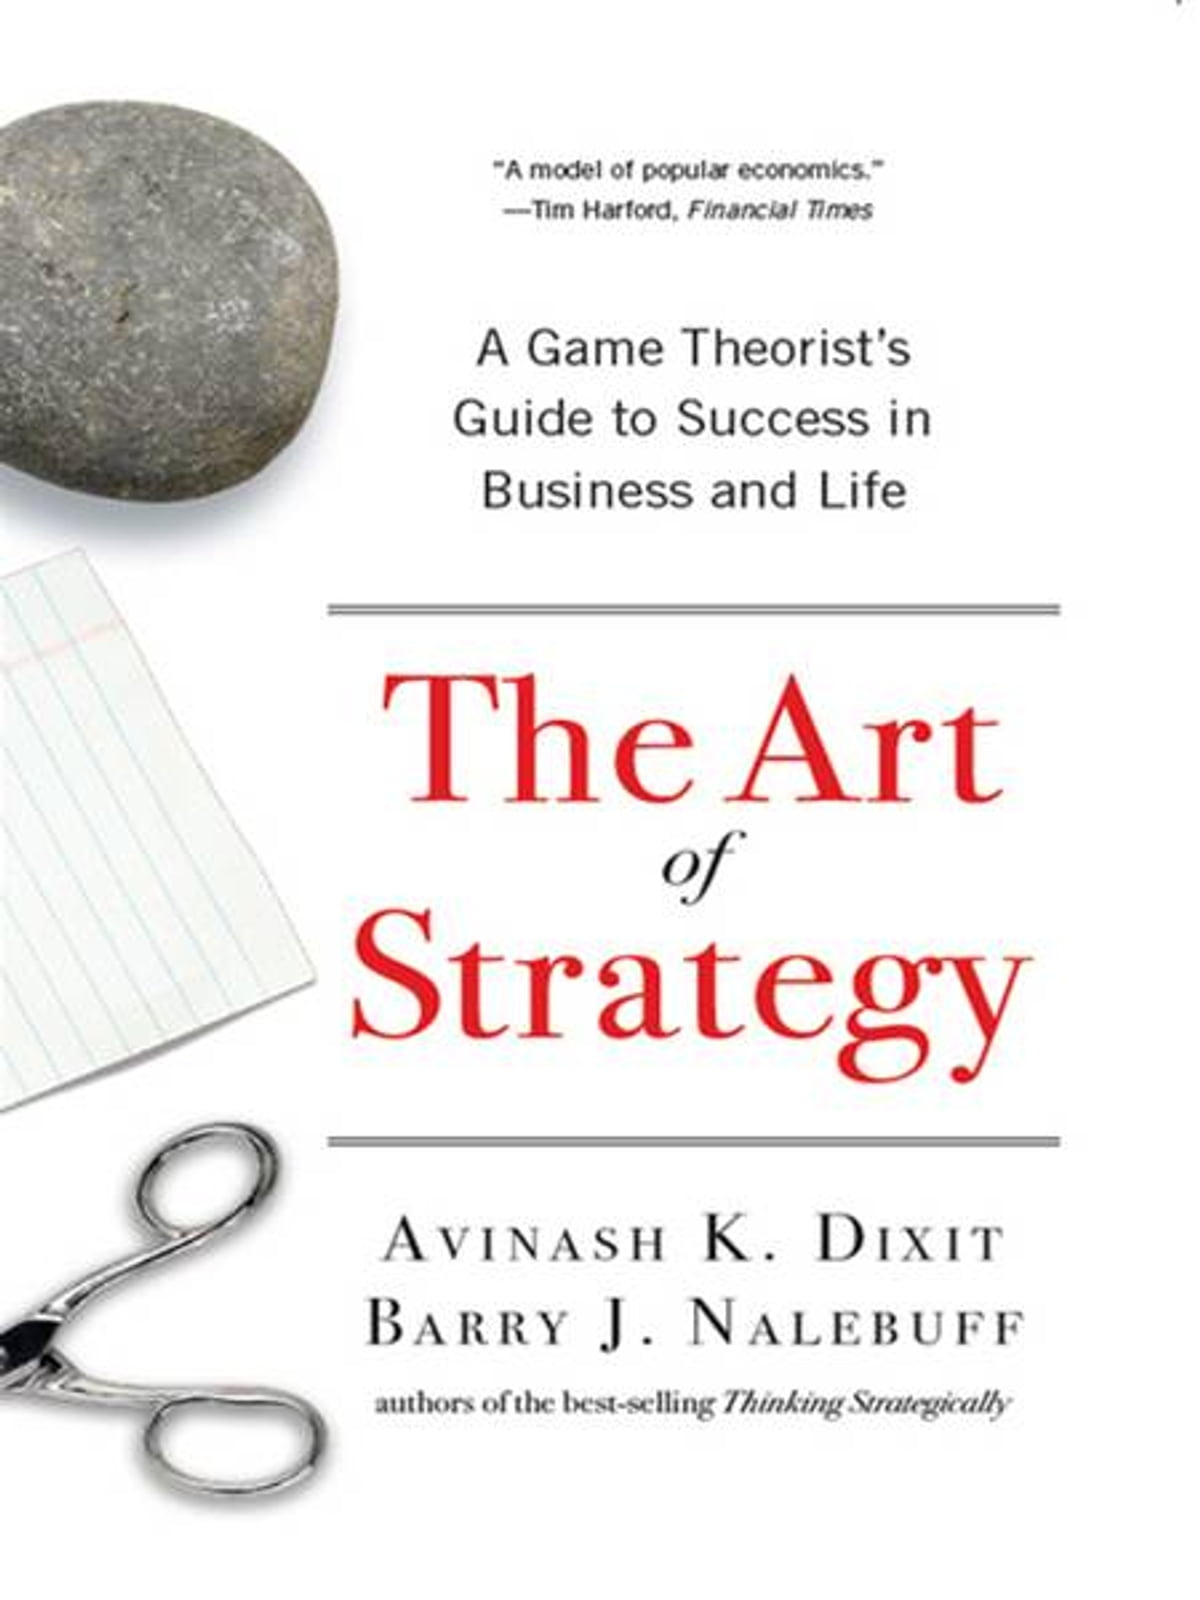 The Art Of Strategy: A Game Theorist's Guide To Success In Business And  Life Ebook